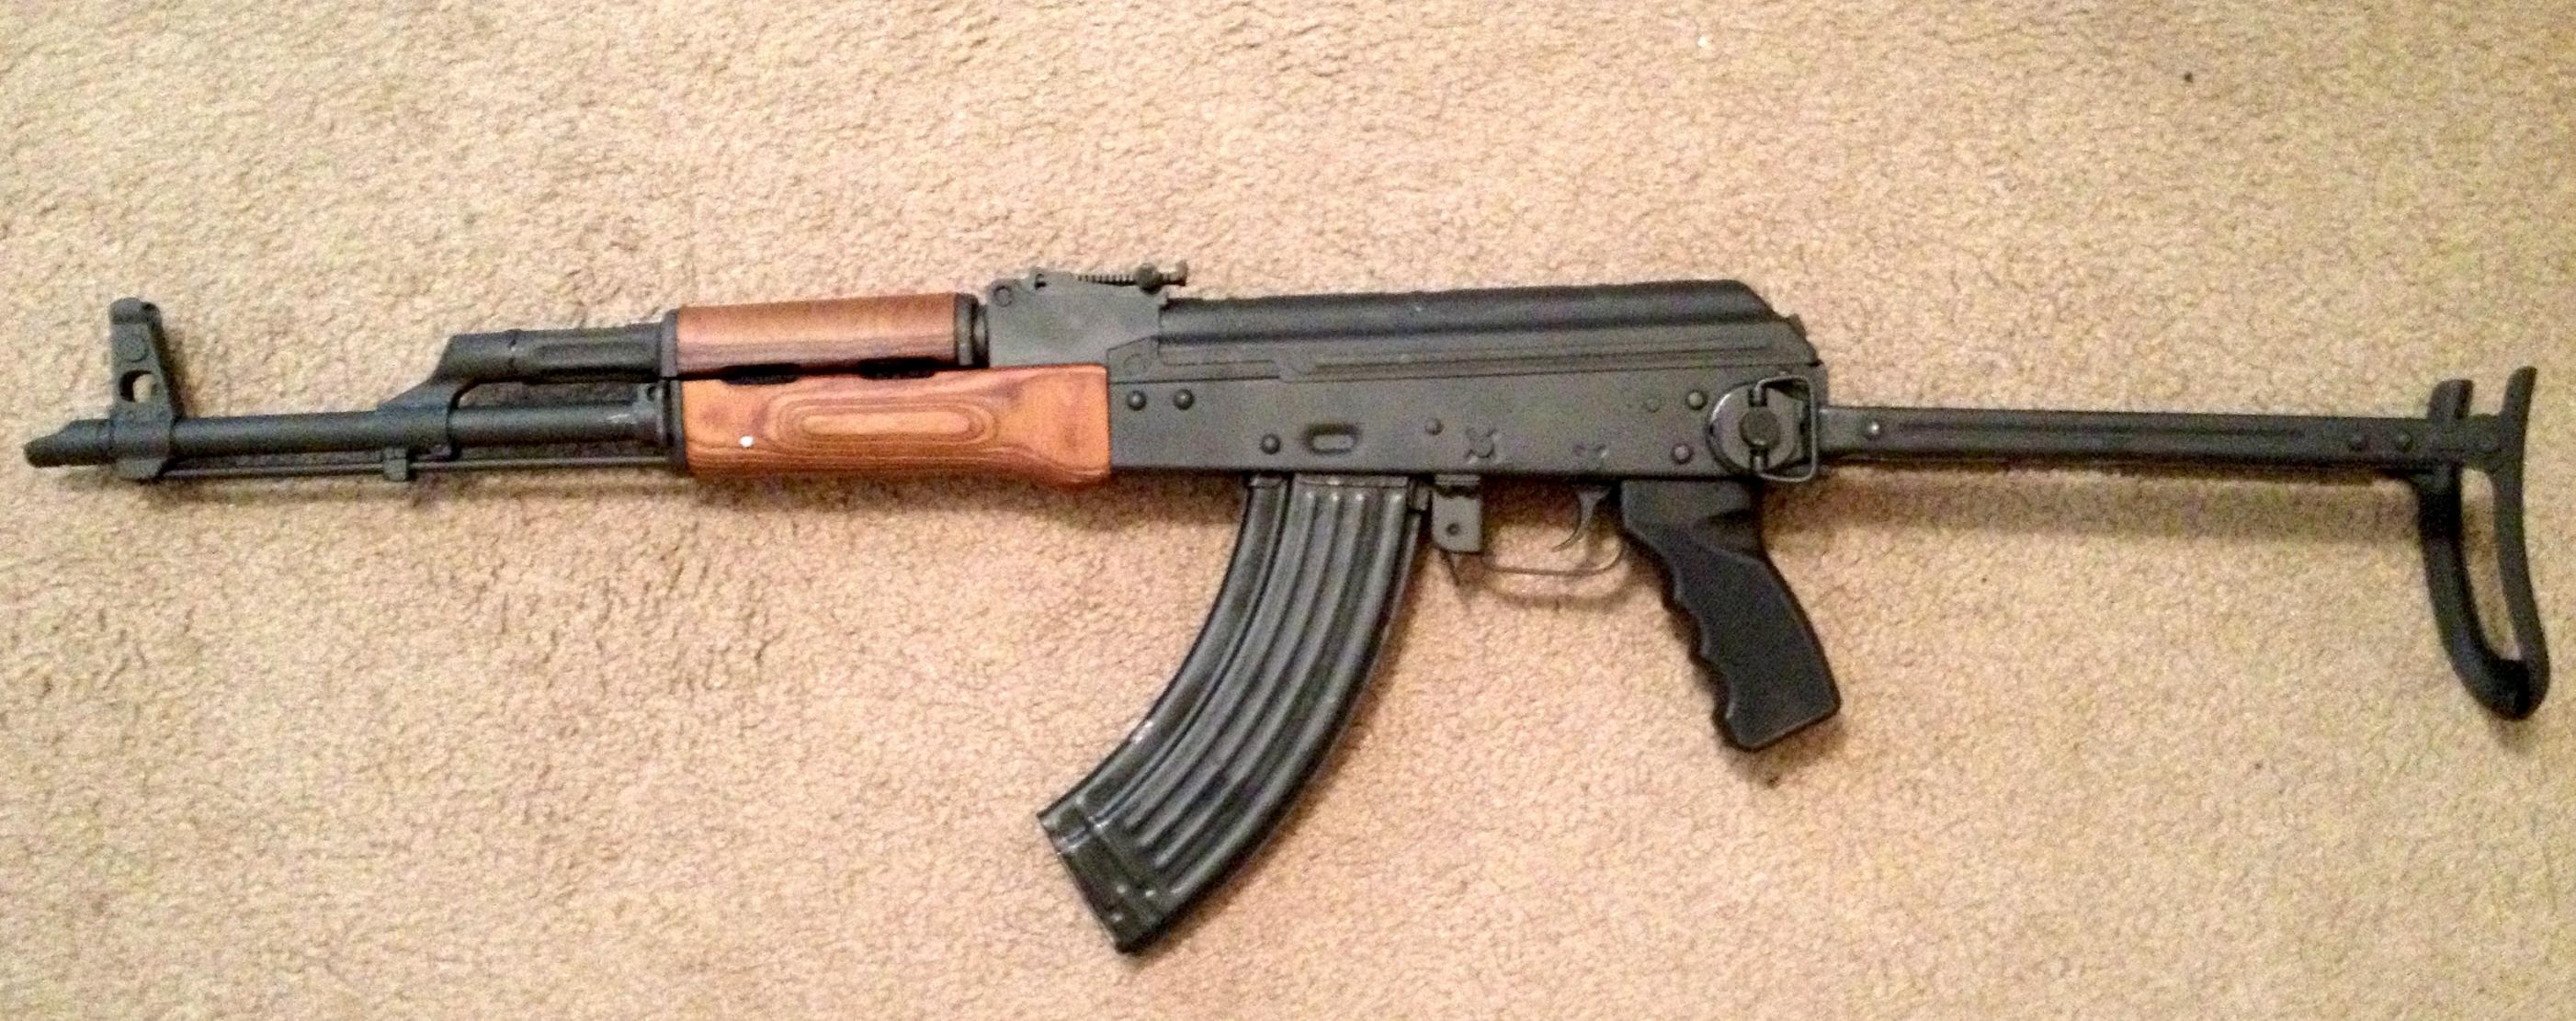 WASR 10/63 Thoughts-img_1075-copy.jpg